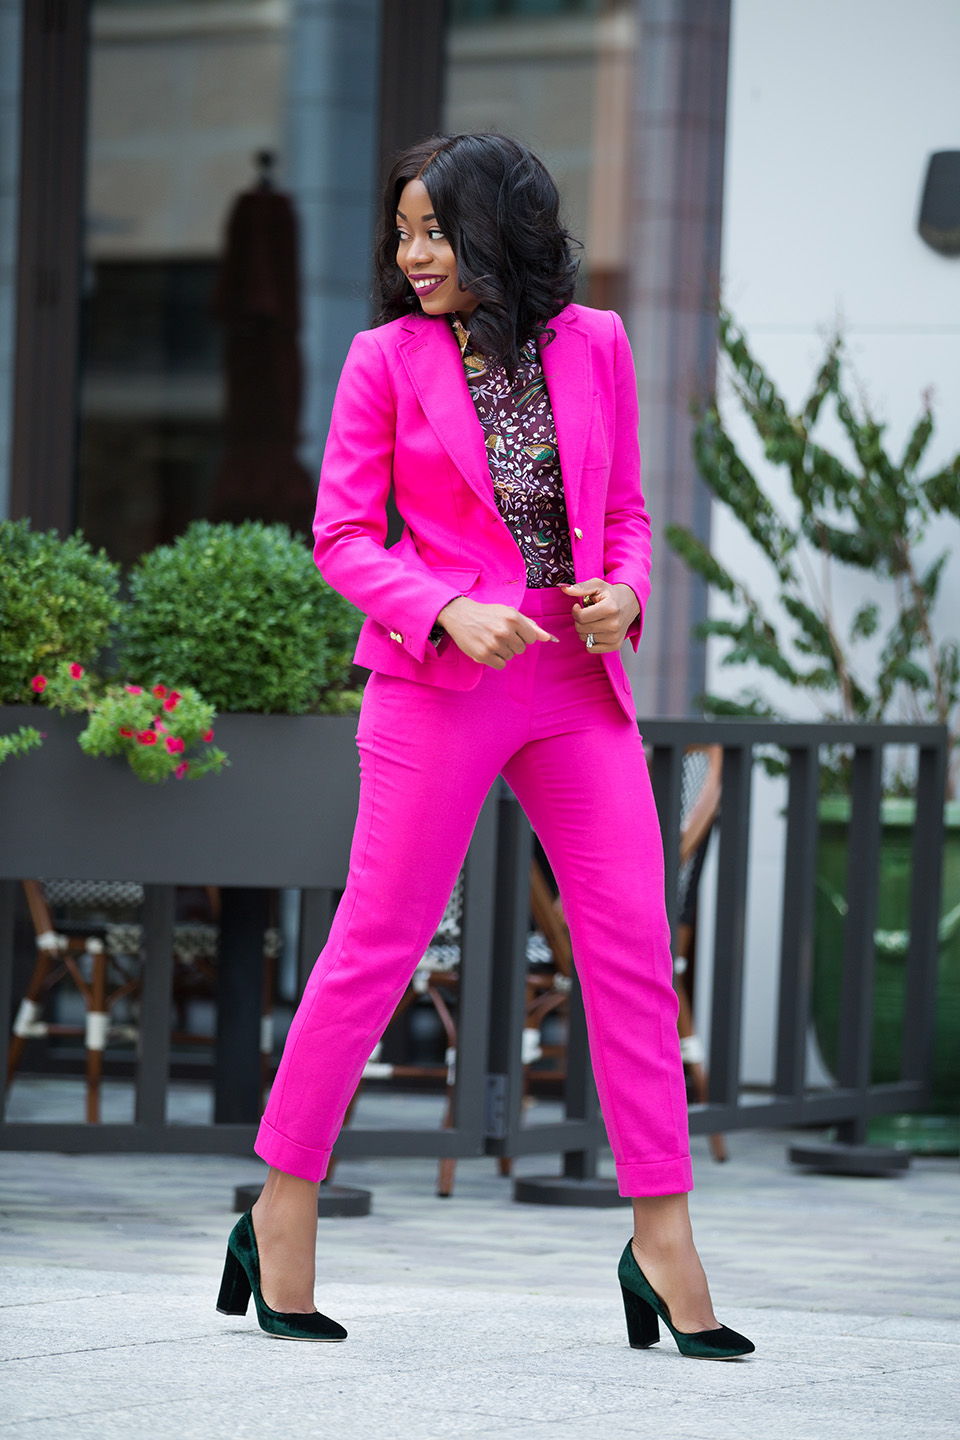 jcrew pink suit, velvet pumps, www.jadore-fashion.com